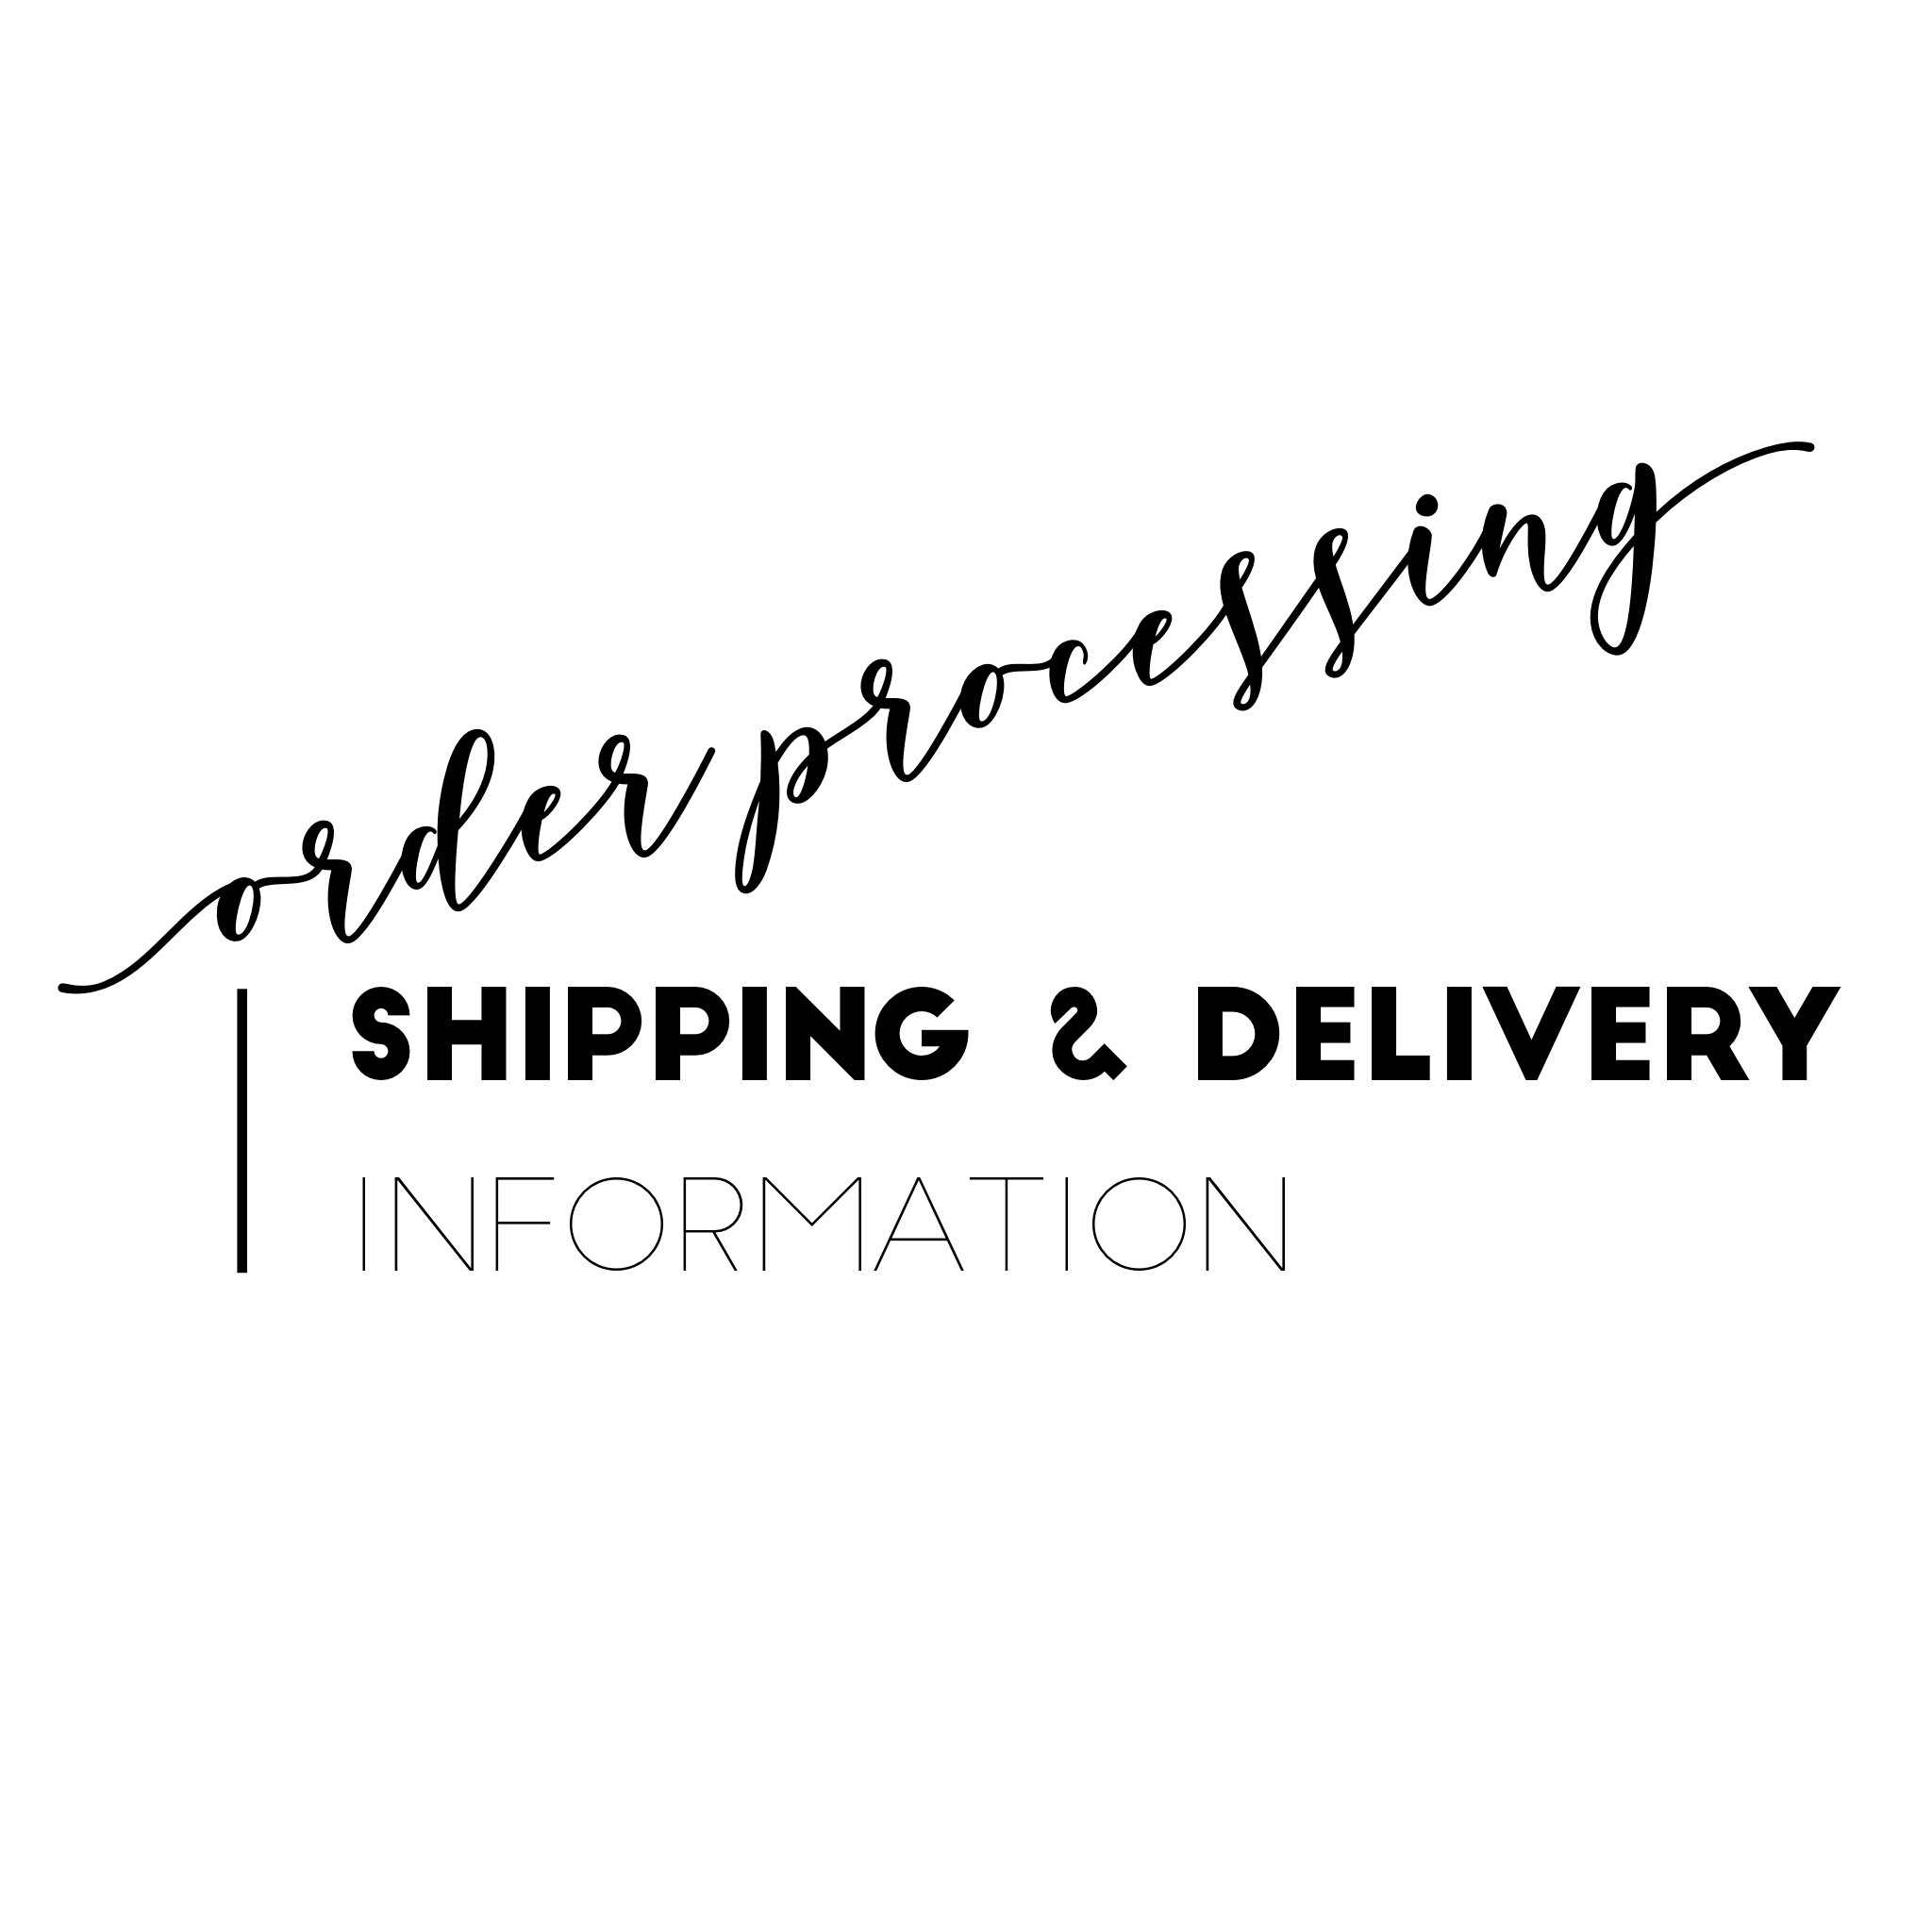 order processing shipping delivery information shop queen persona